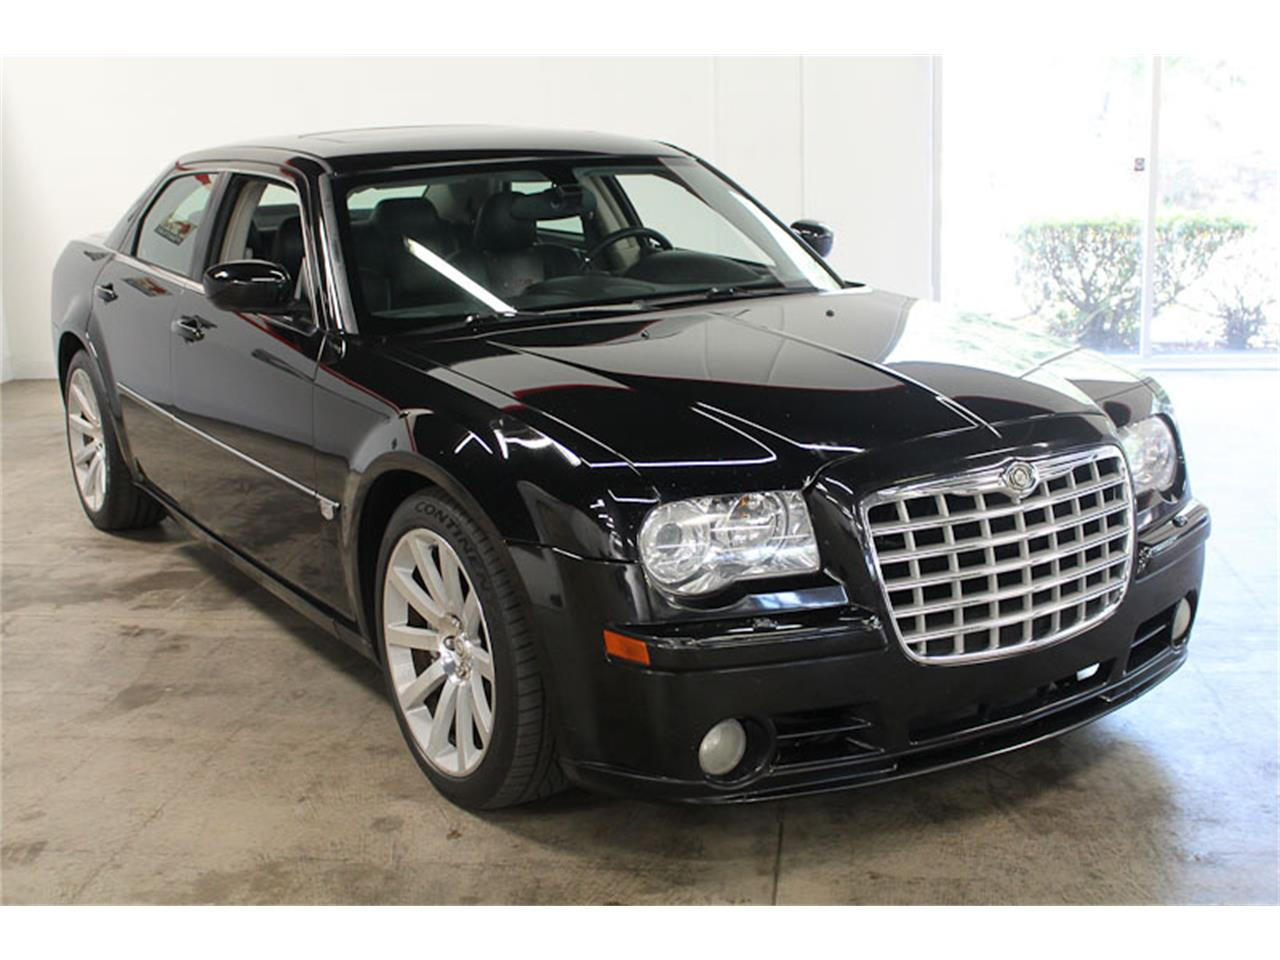 Large Picture of '07 Chrysler 300 located in Fairfield California - M9O4